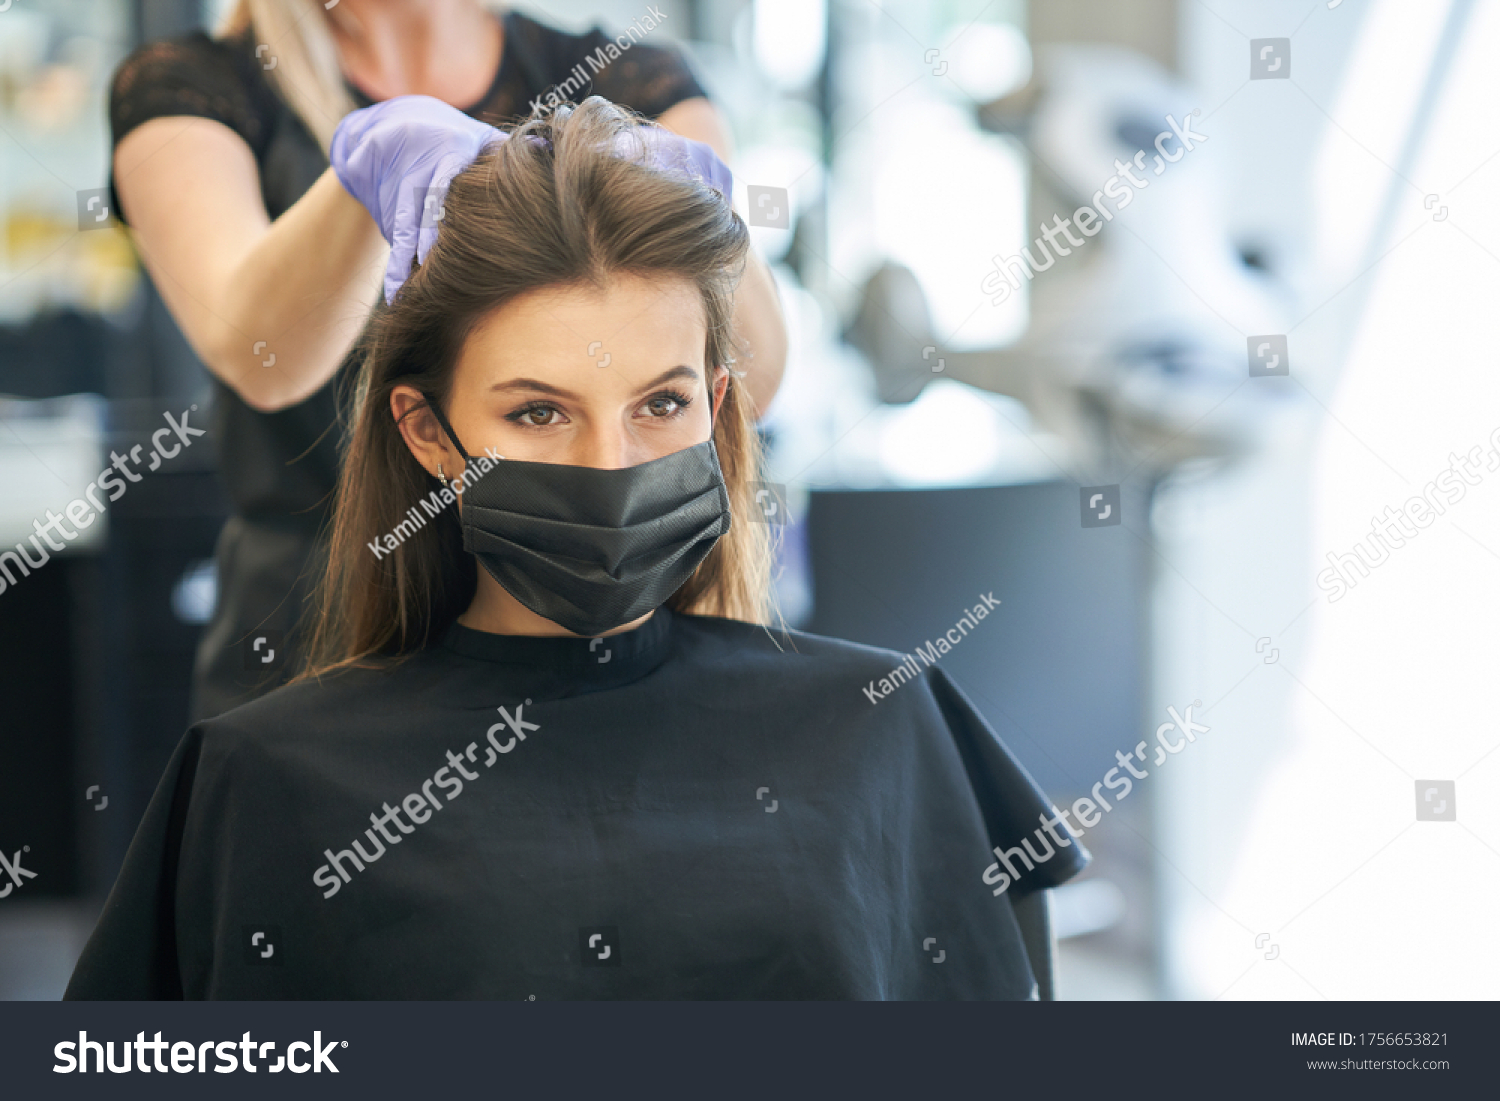 Adult woman at hairdresser wearing protective mask due to coronavirus pandemic #1756653821